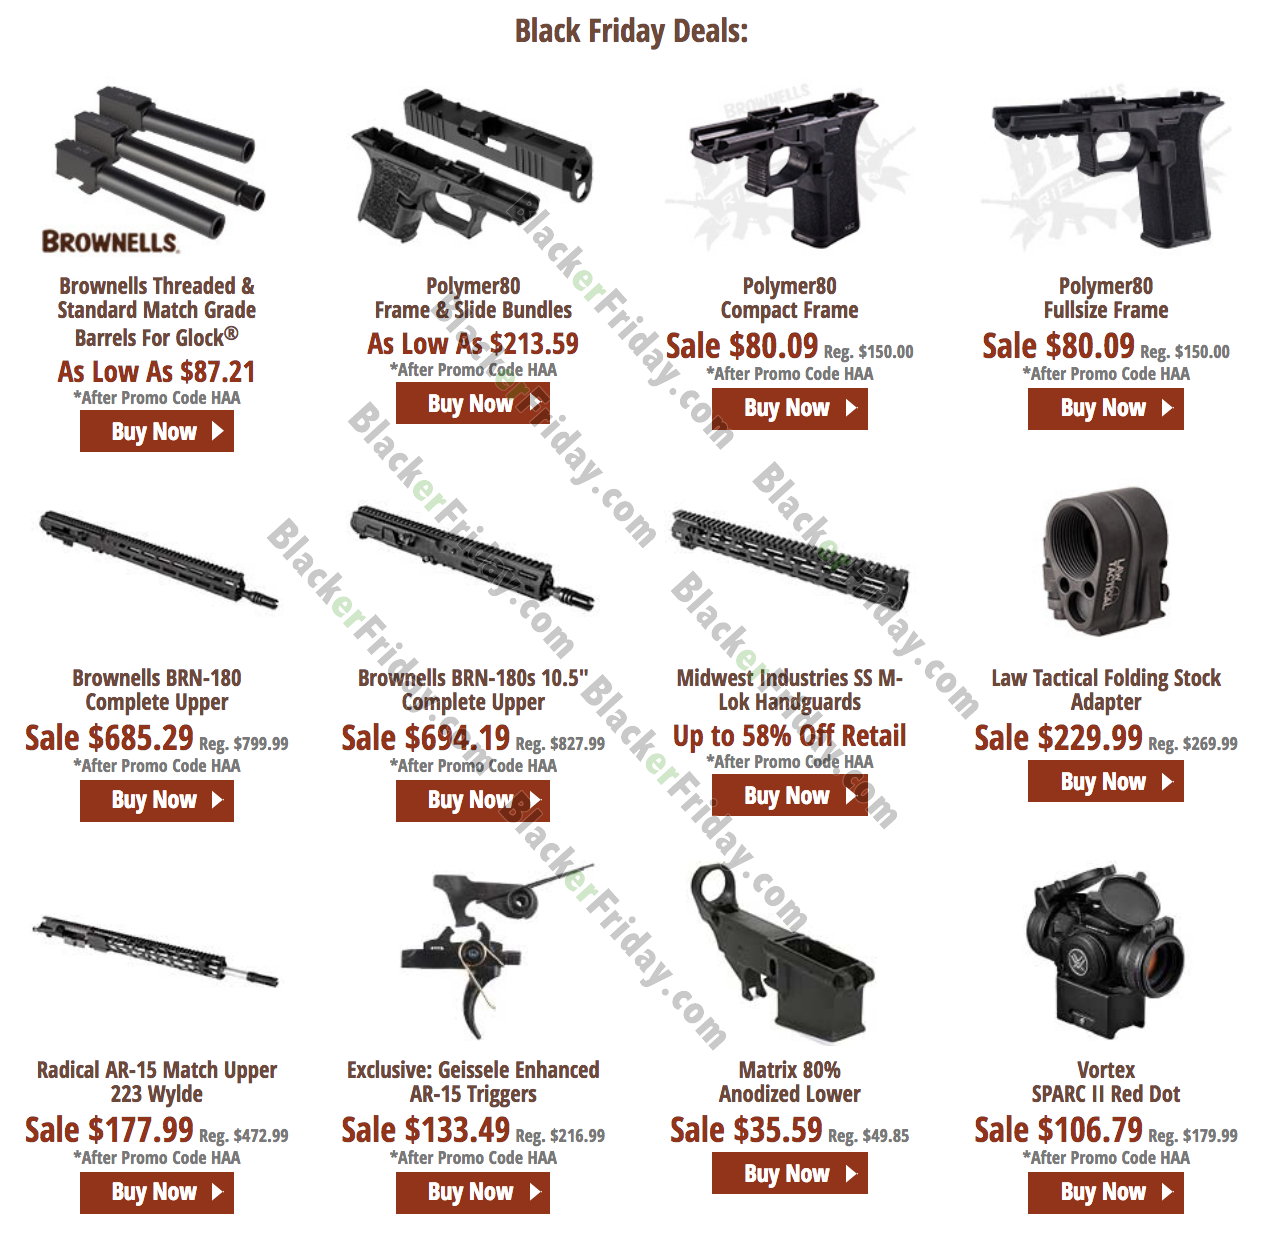 Brownells Black Friday 2020 Sale What To Expect Blacker Friday